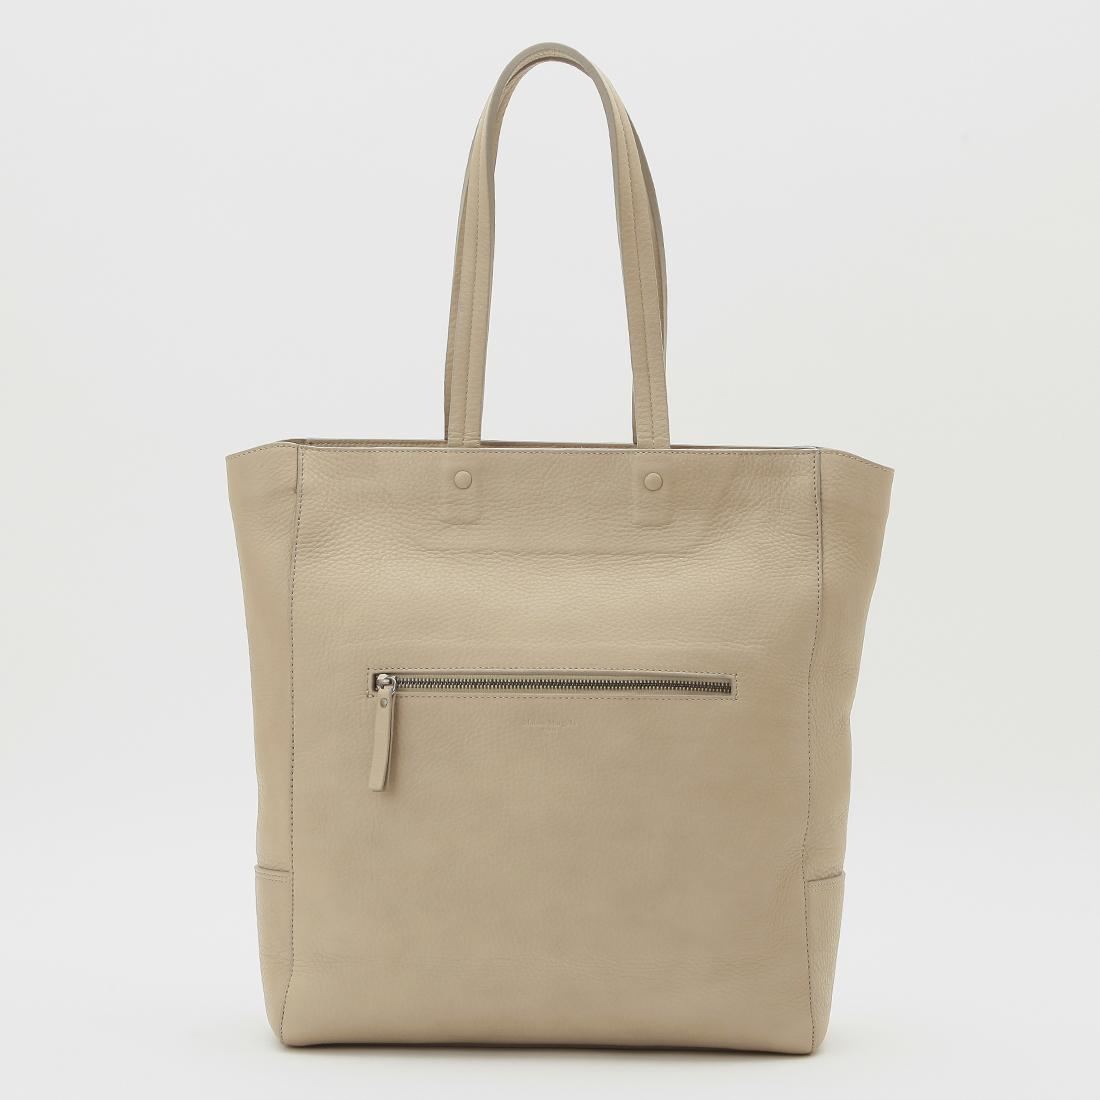 201606_mens-totebag-20select_032